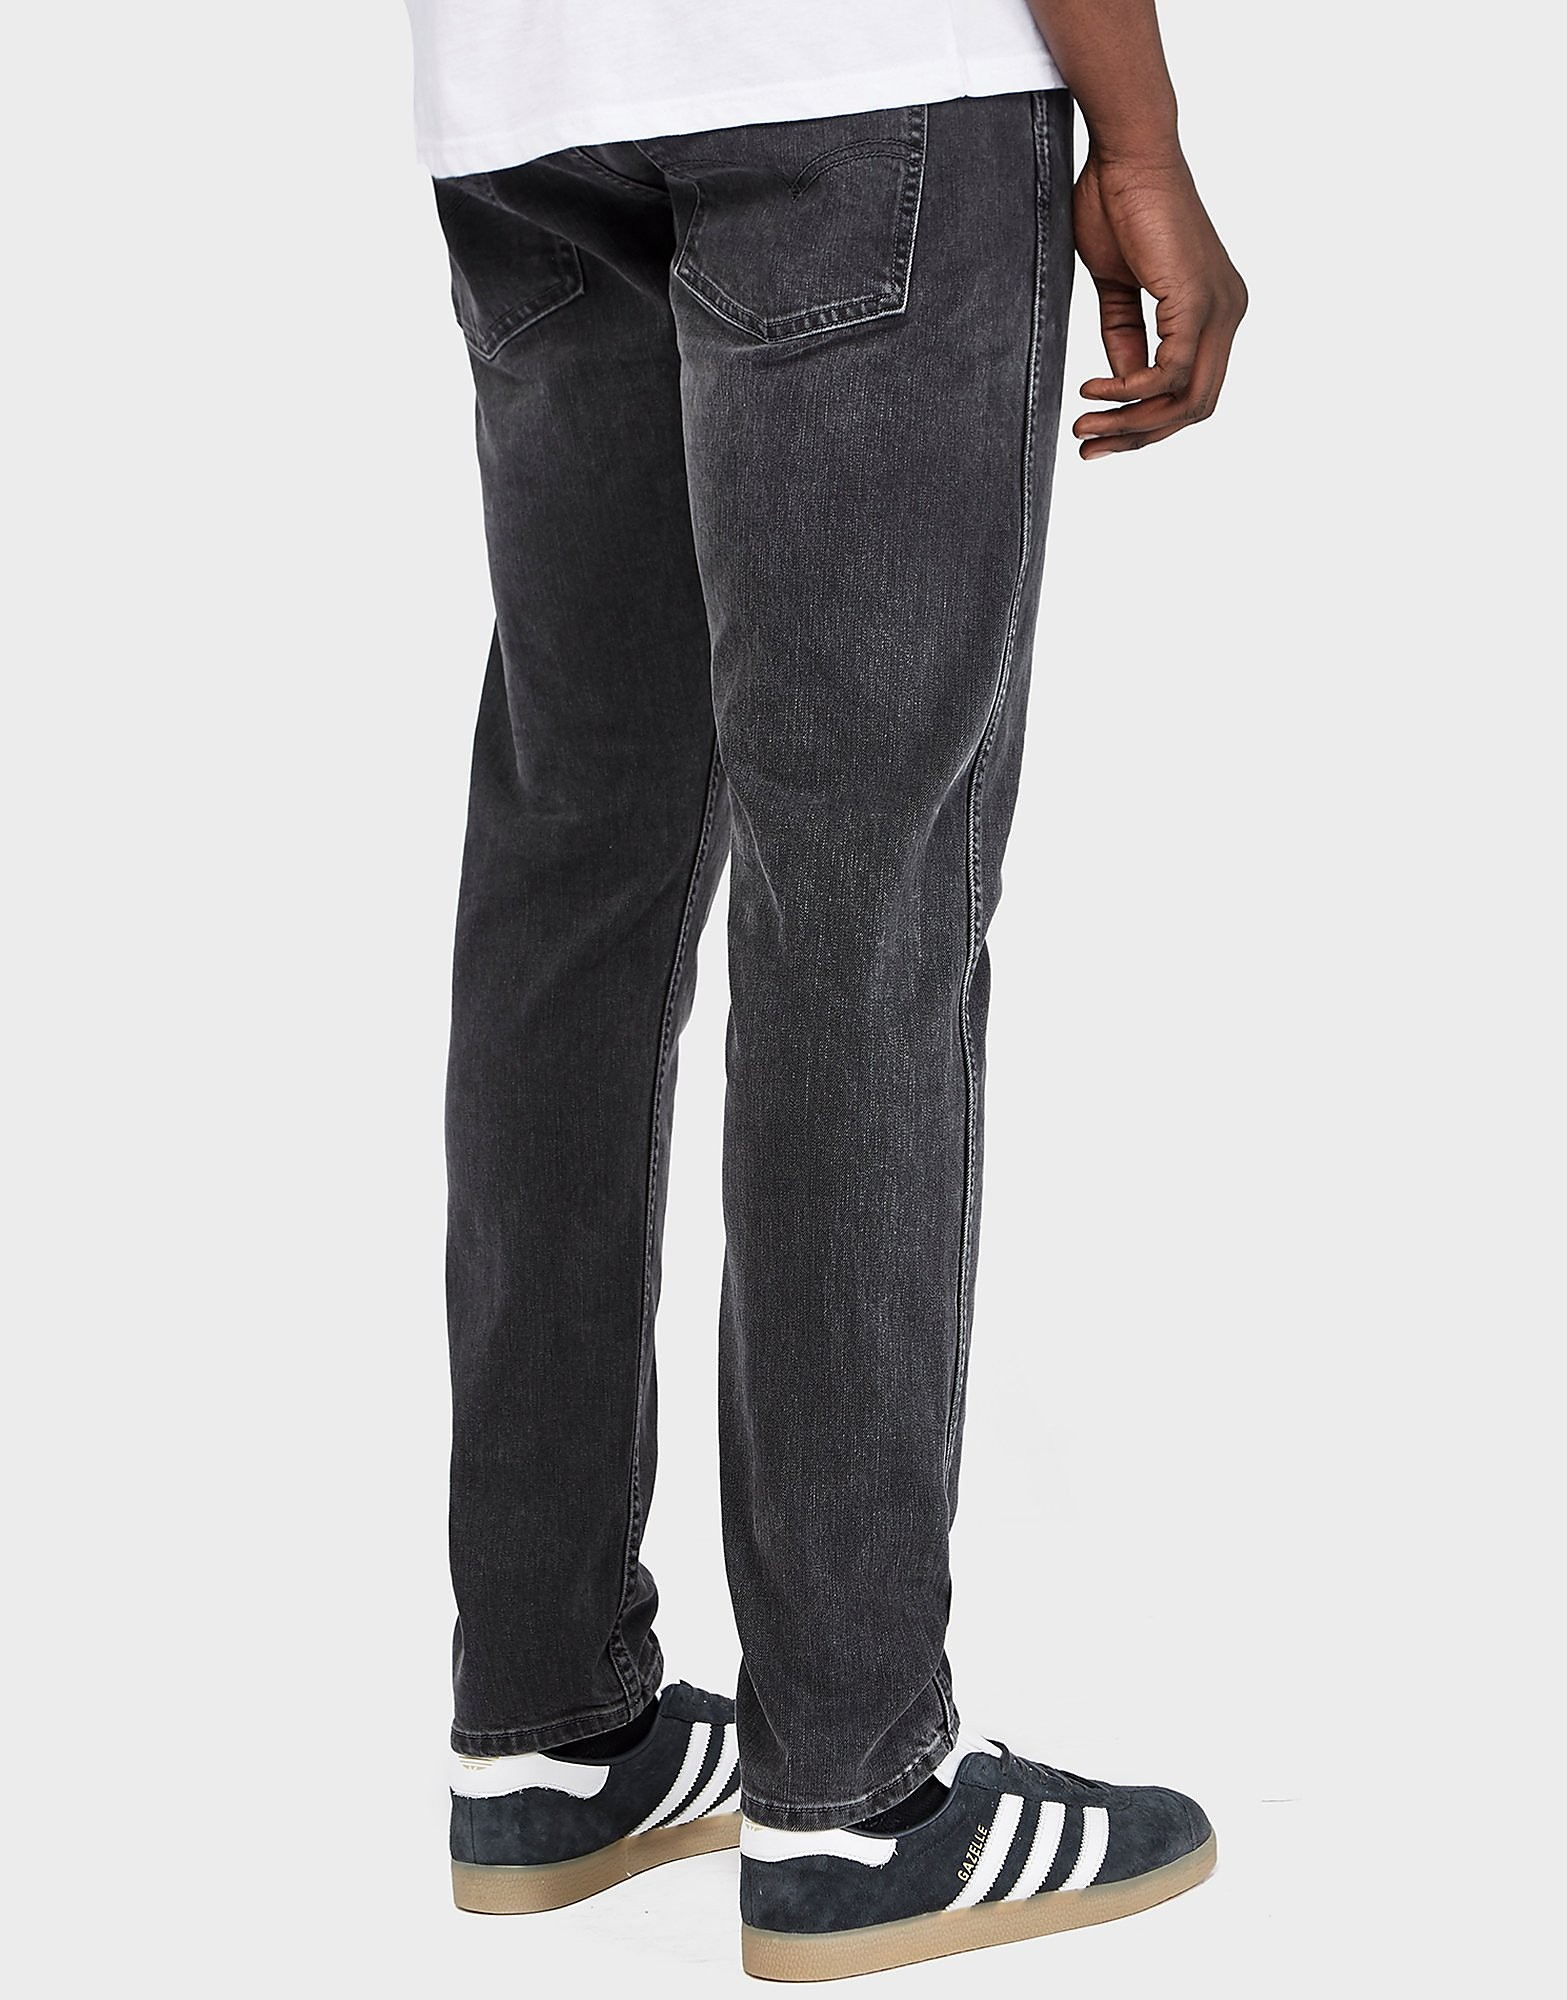 Levis Slim Tapered Jeans